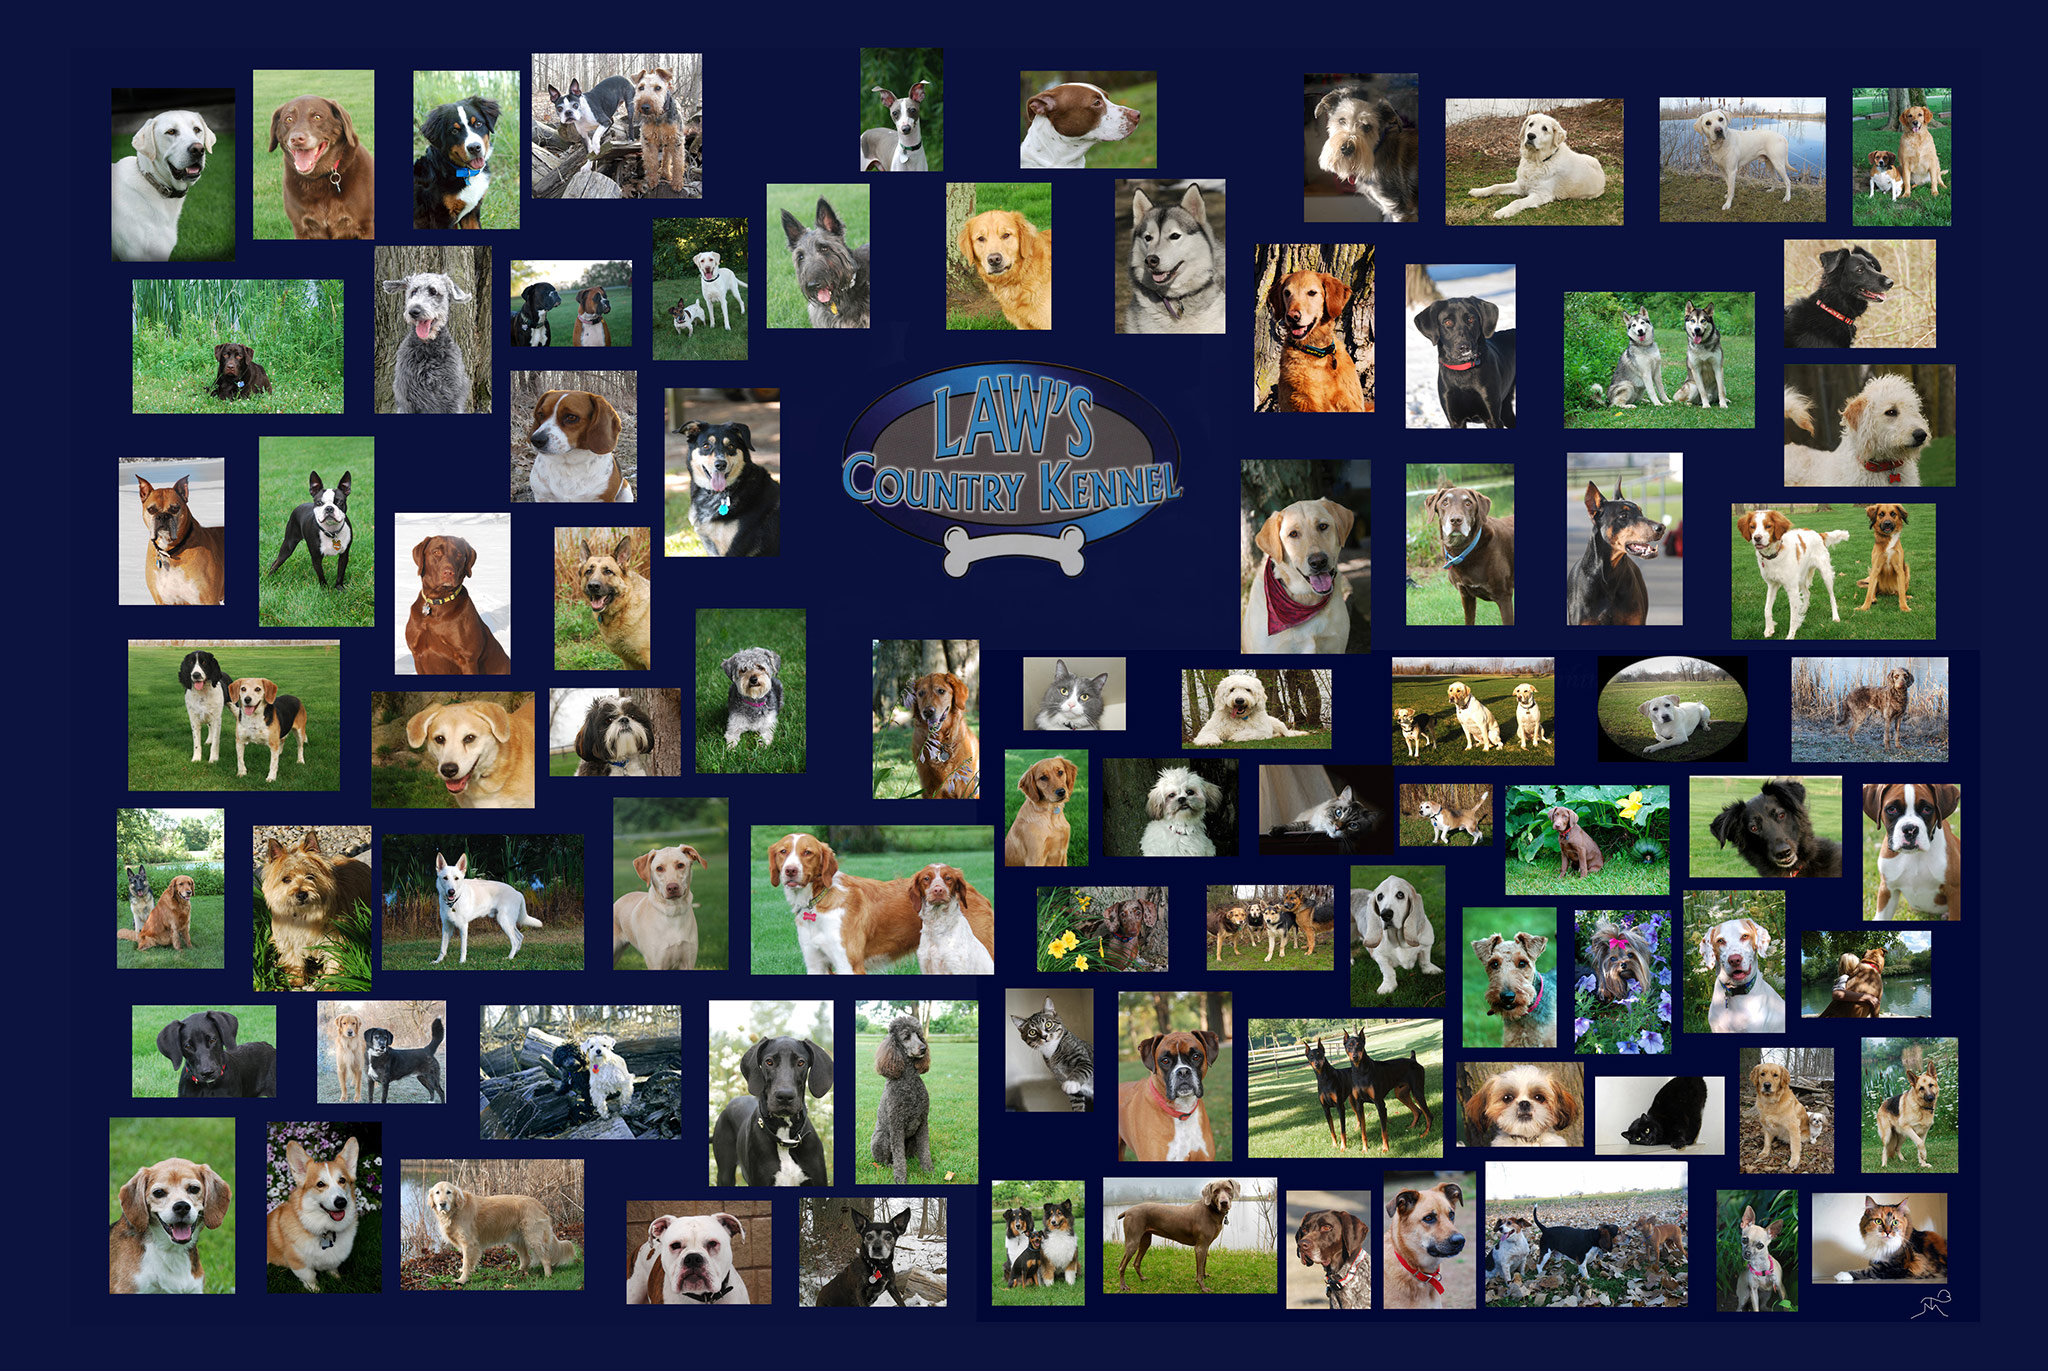 Law's Country Kennel collage